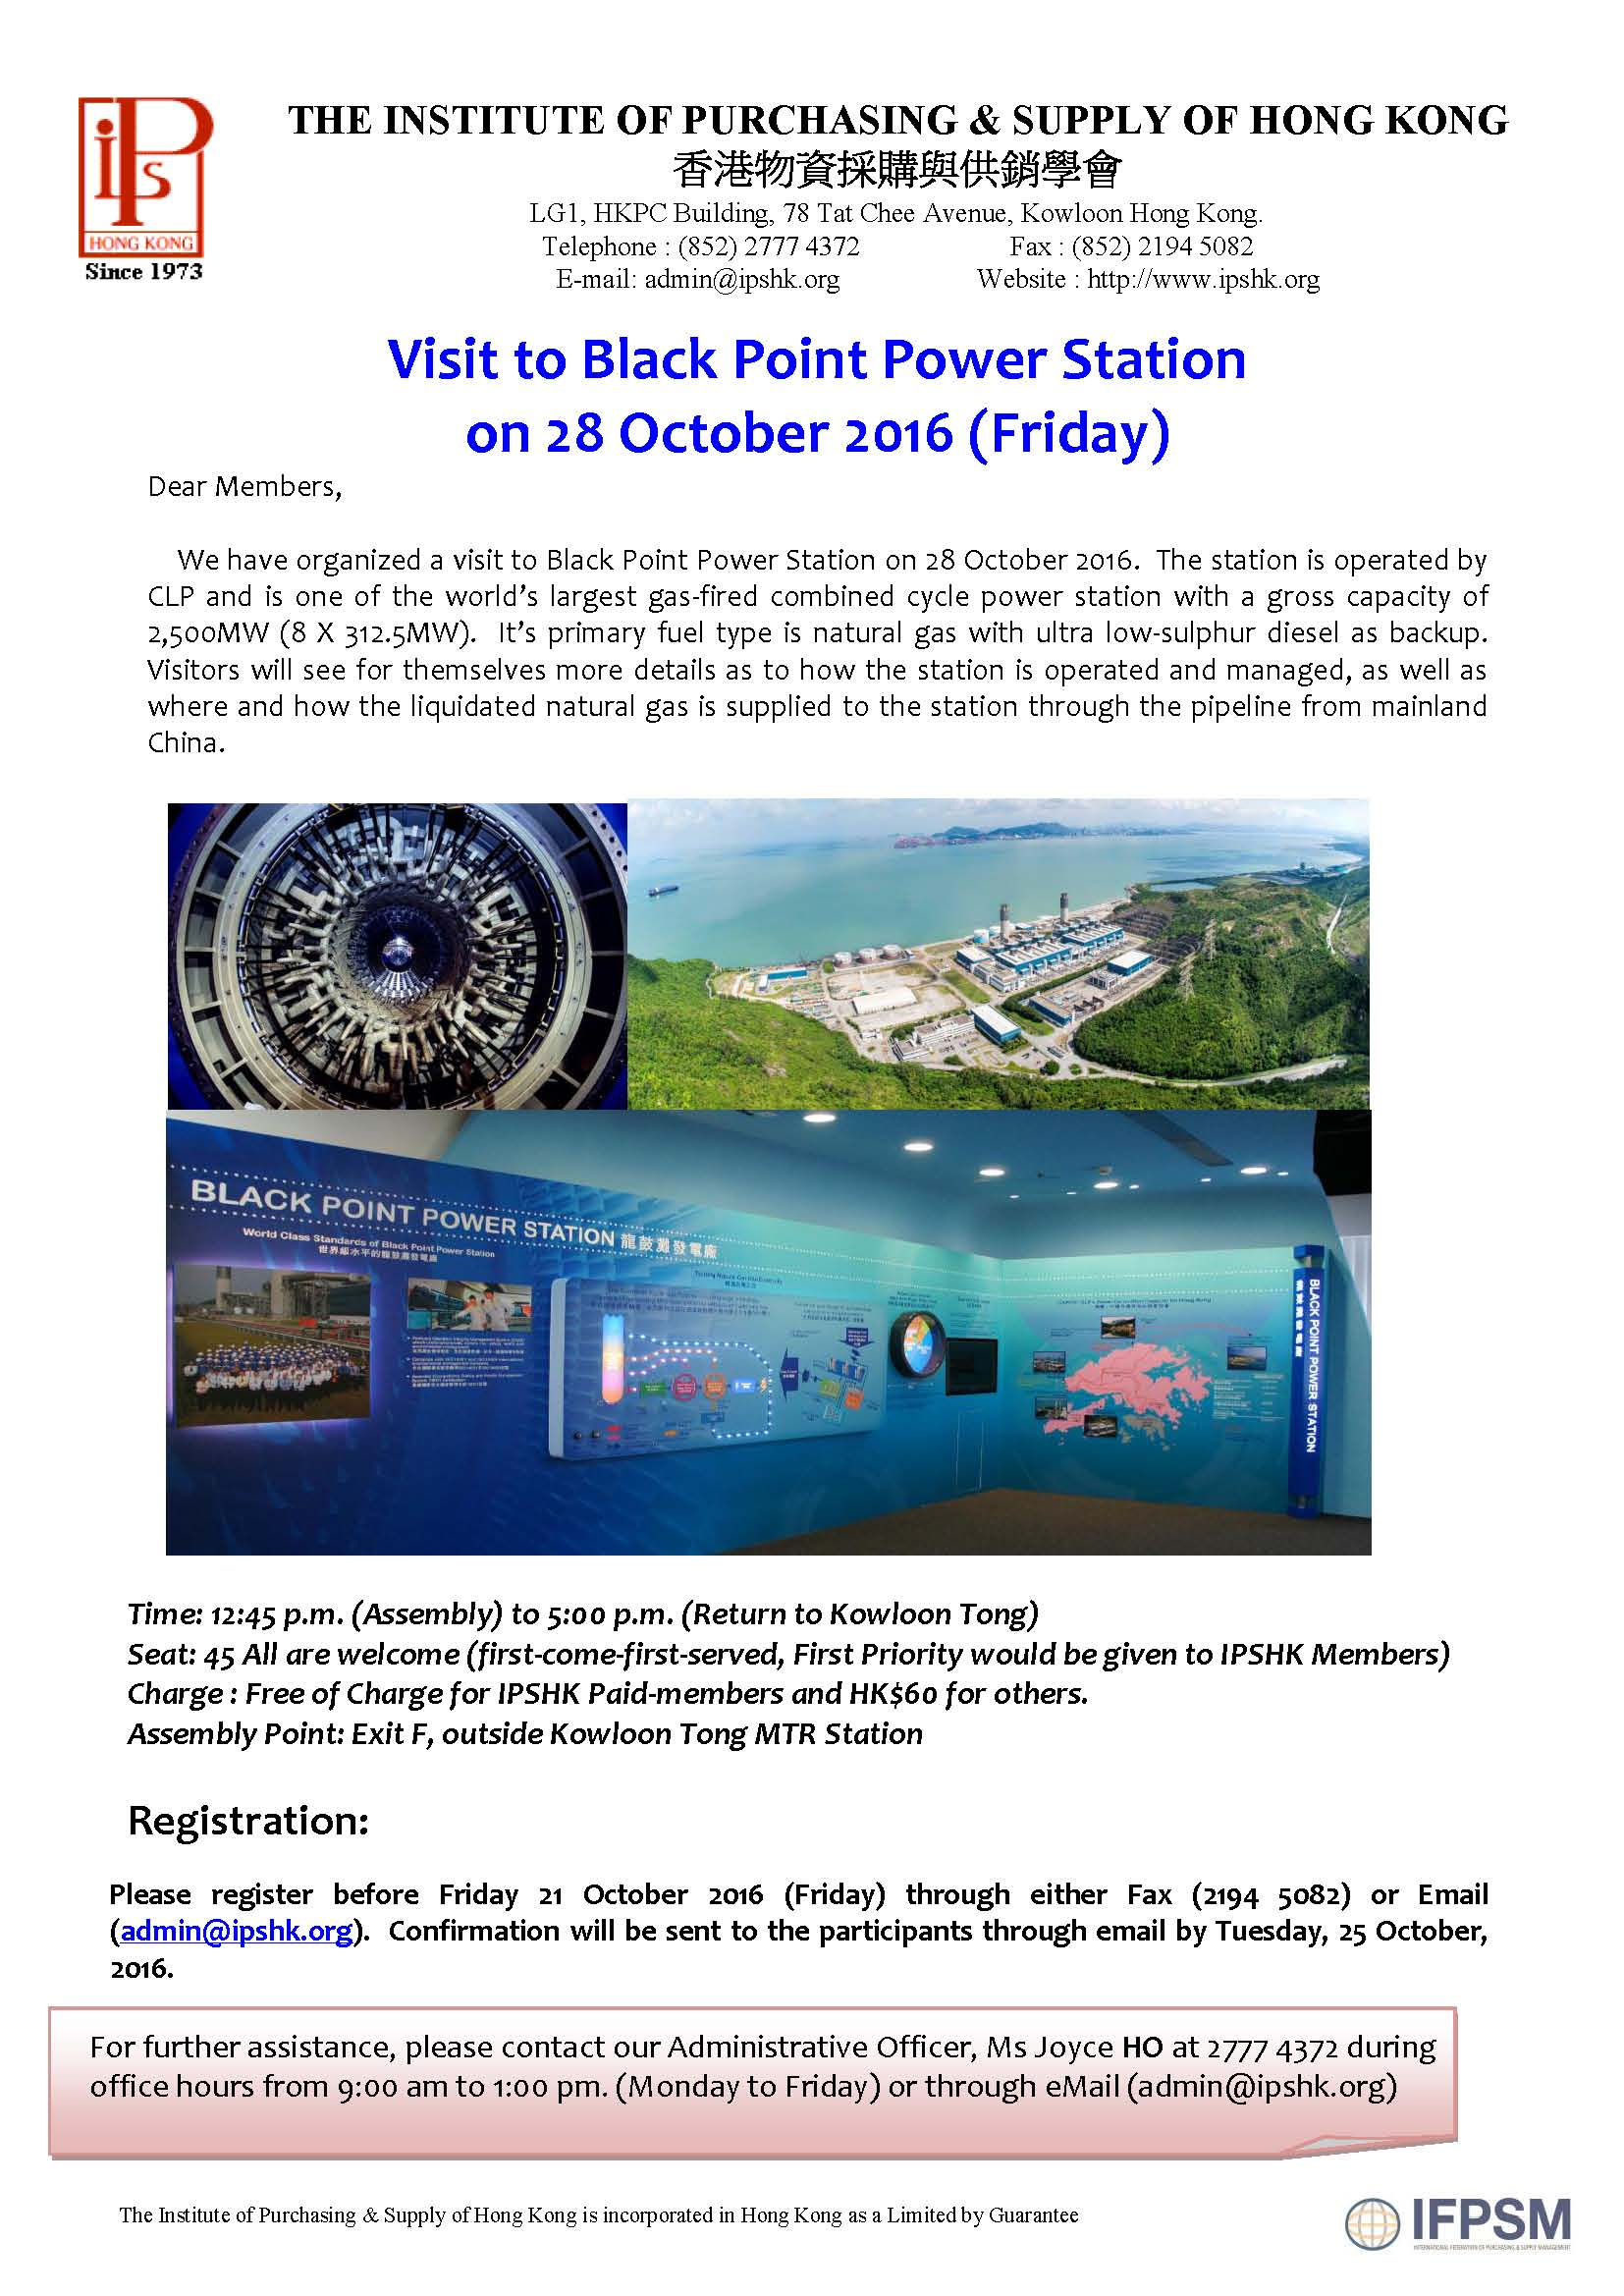 Flyer for Visit to Black Point Power Station v 3 1